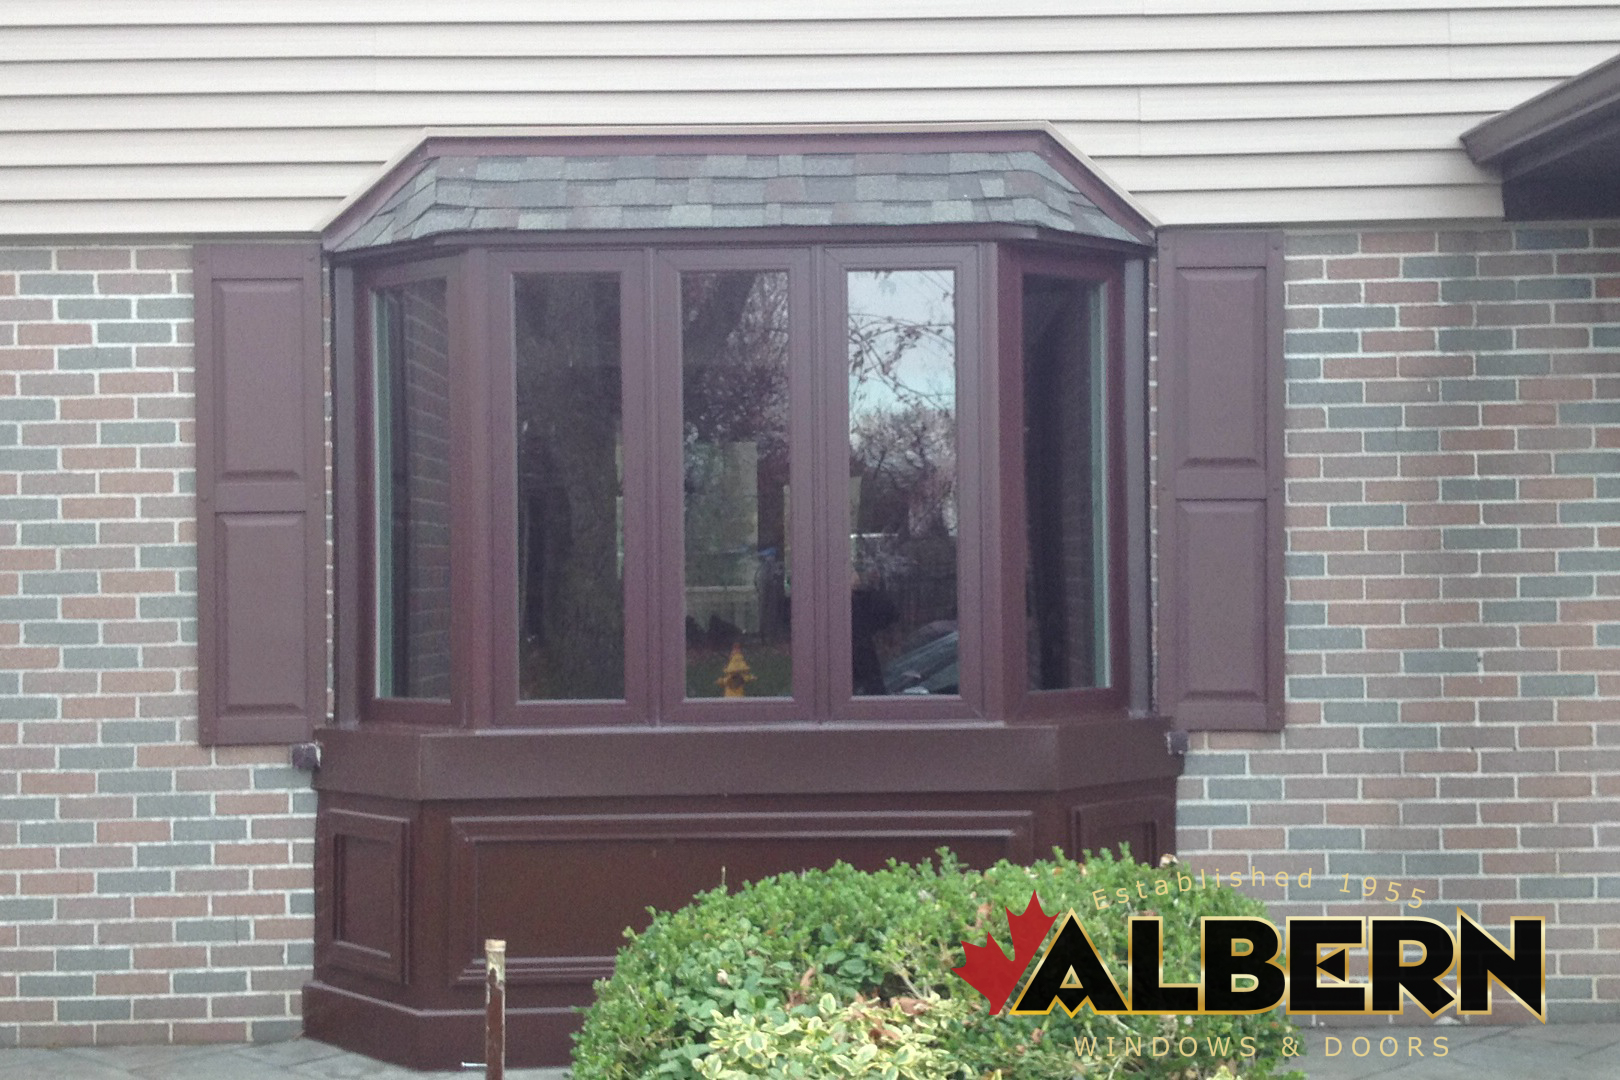 Albern Windows & Doors Installation Projects-128.jpg